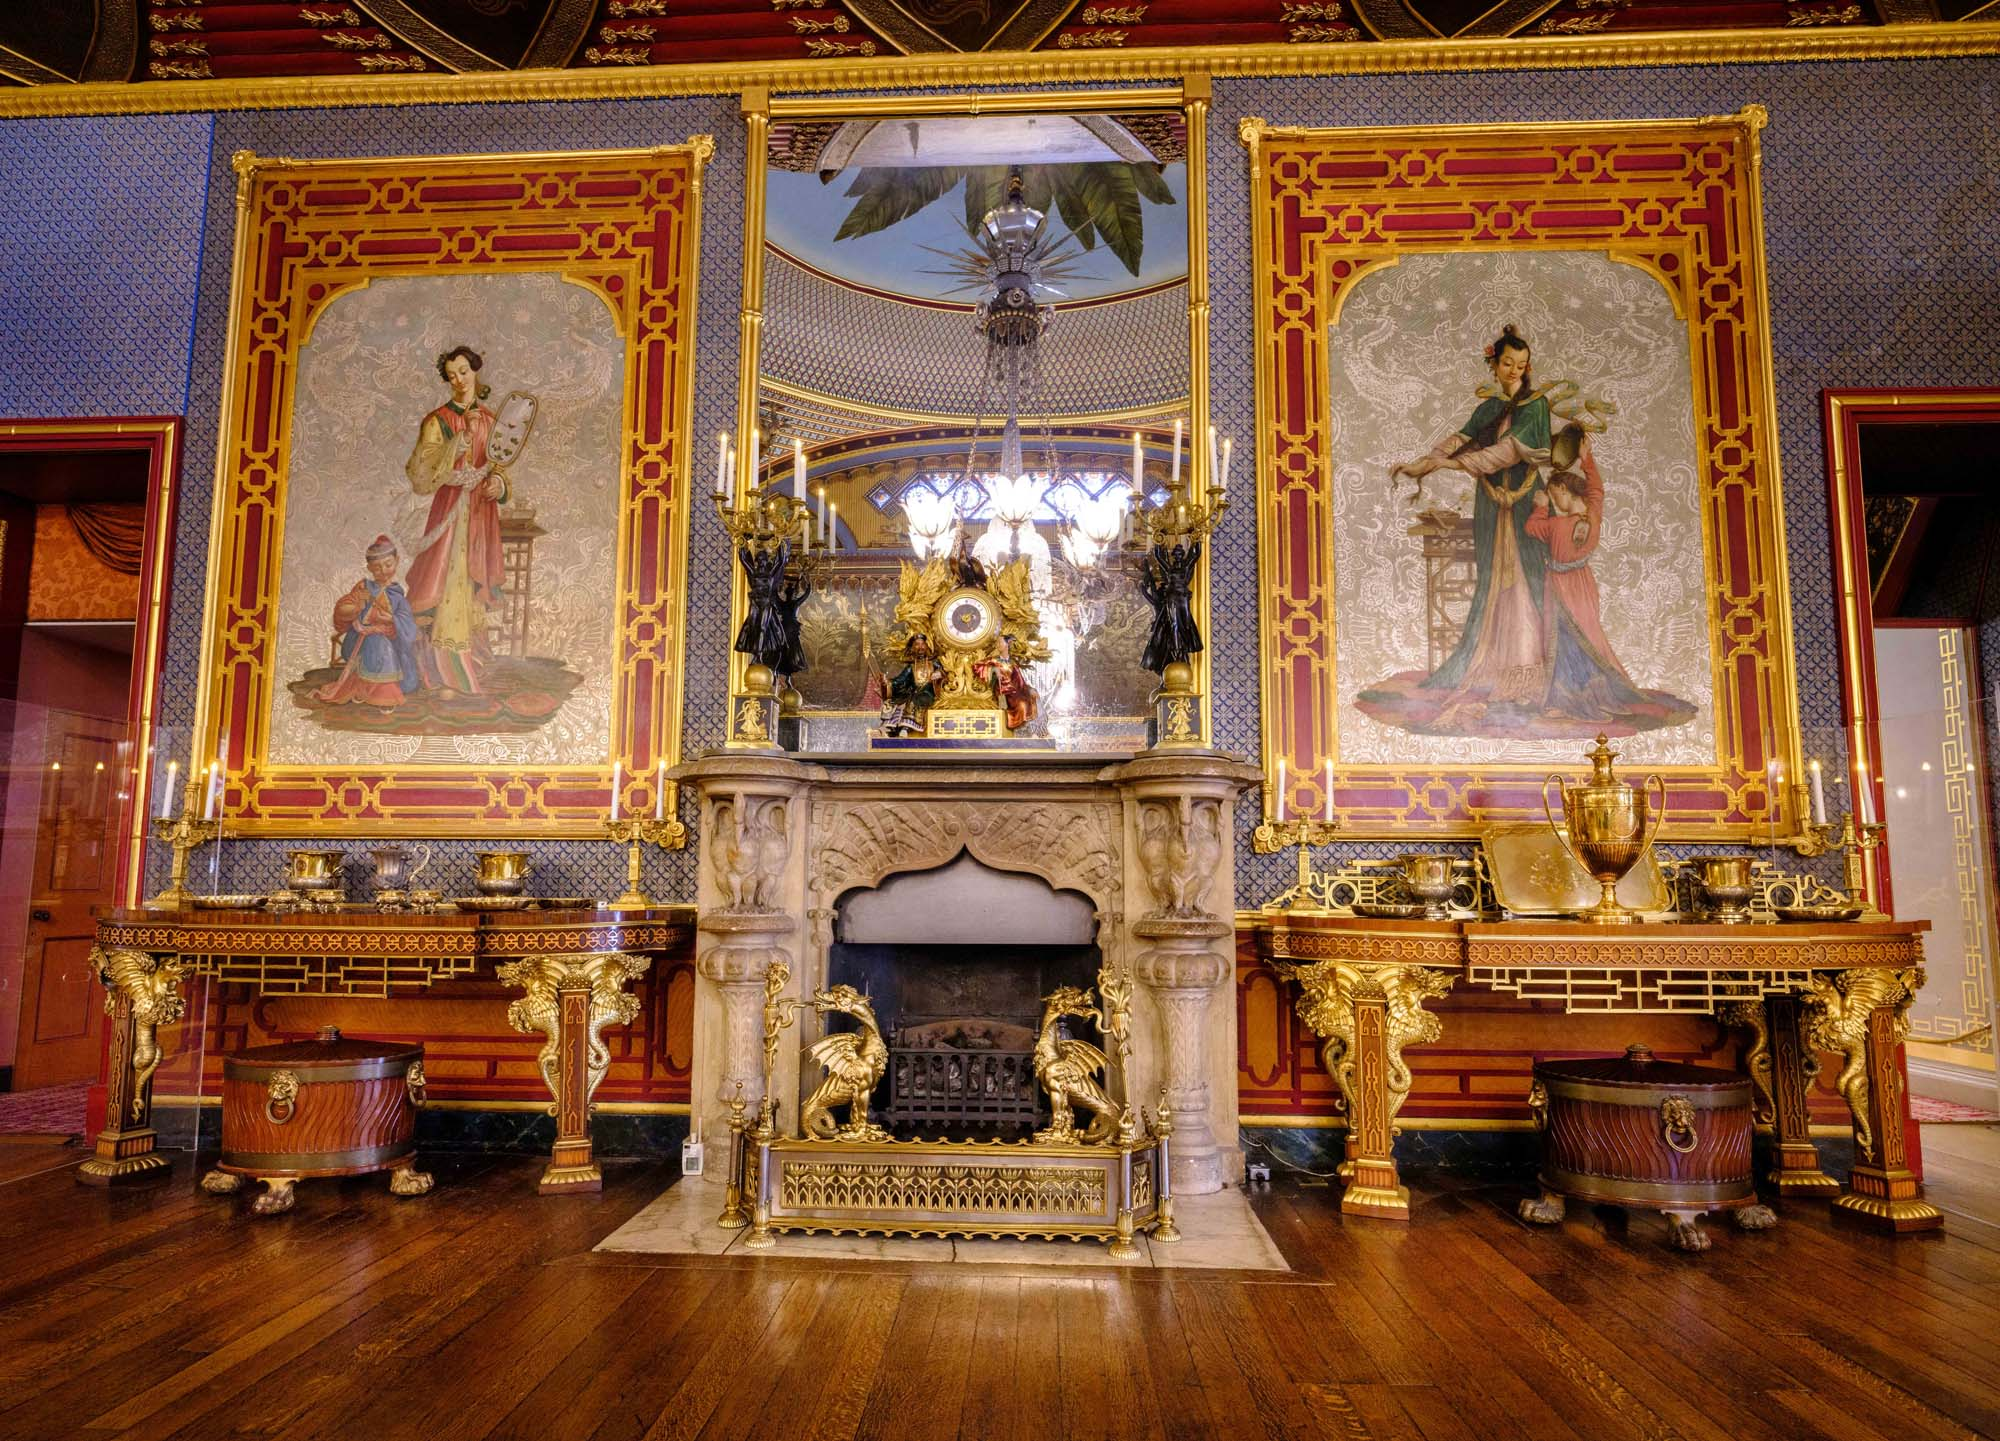 a photo of an ornate chinoiseried room with golden mantelpiece featuring an ornamental clock